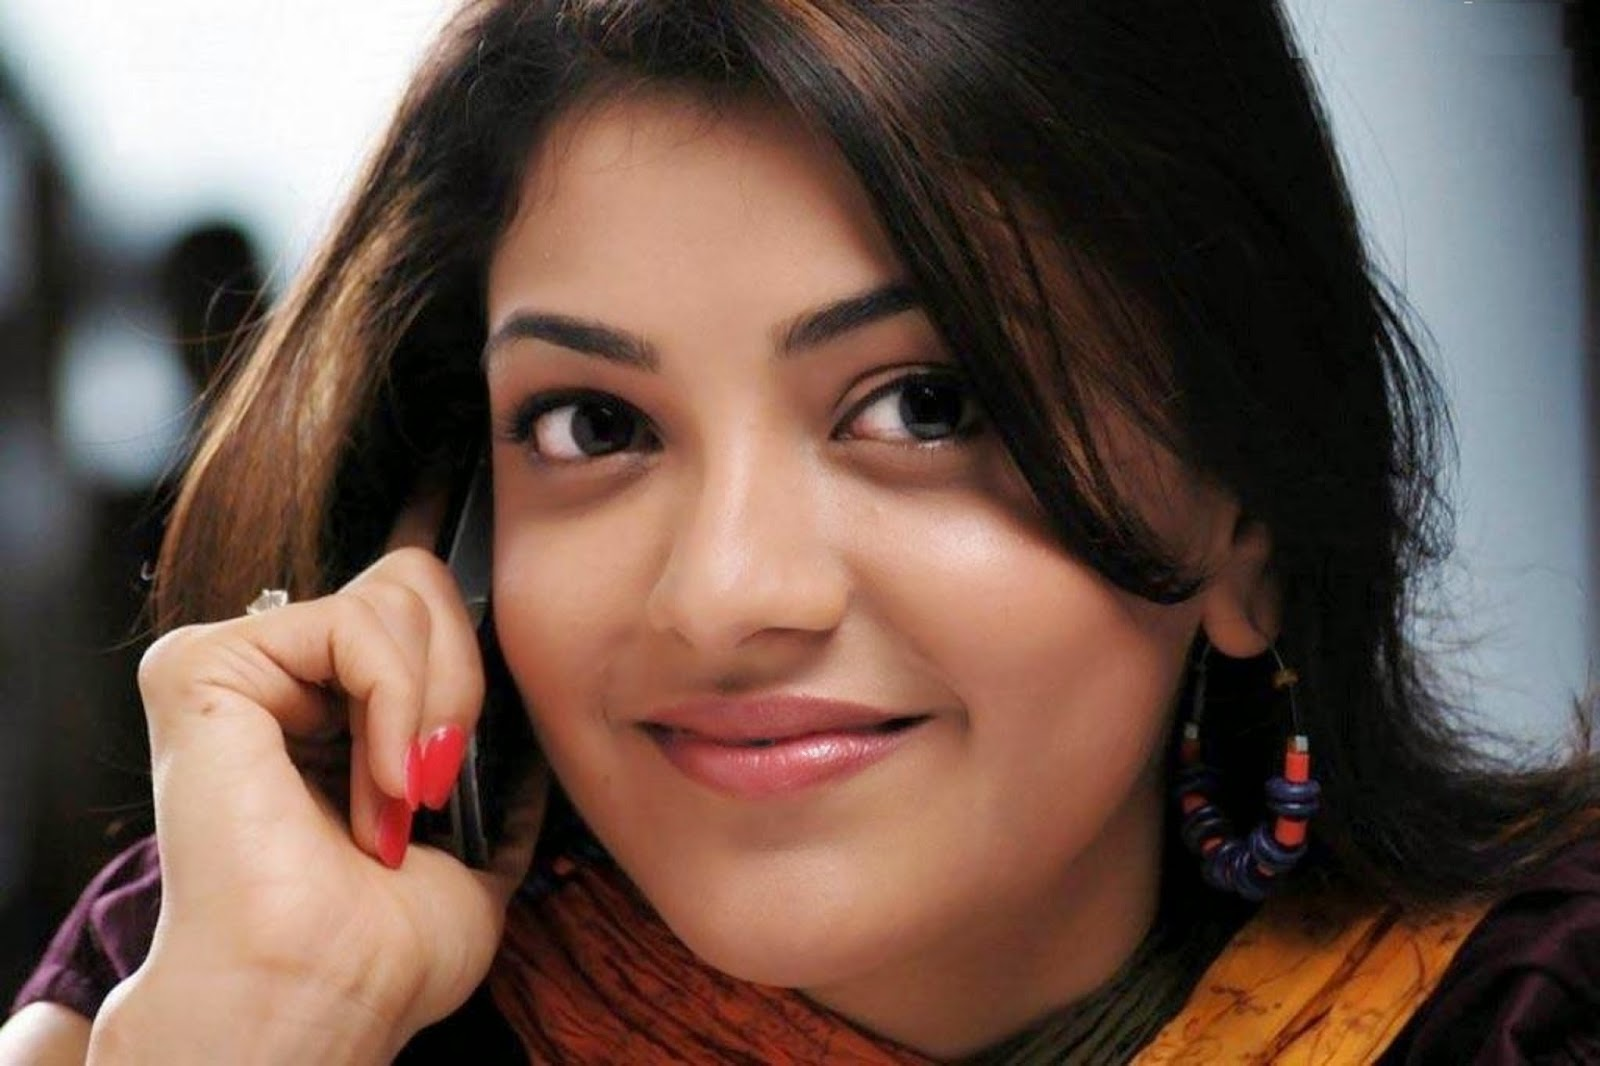 Wallpaper download kajal agarwal - Kajal Agarwal Hd Wallpapers Free Download